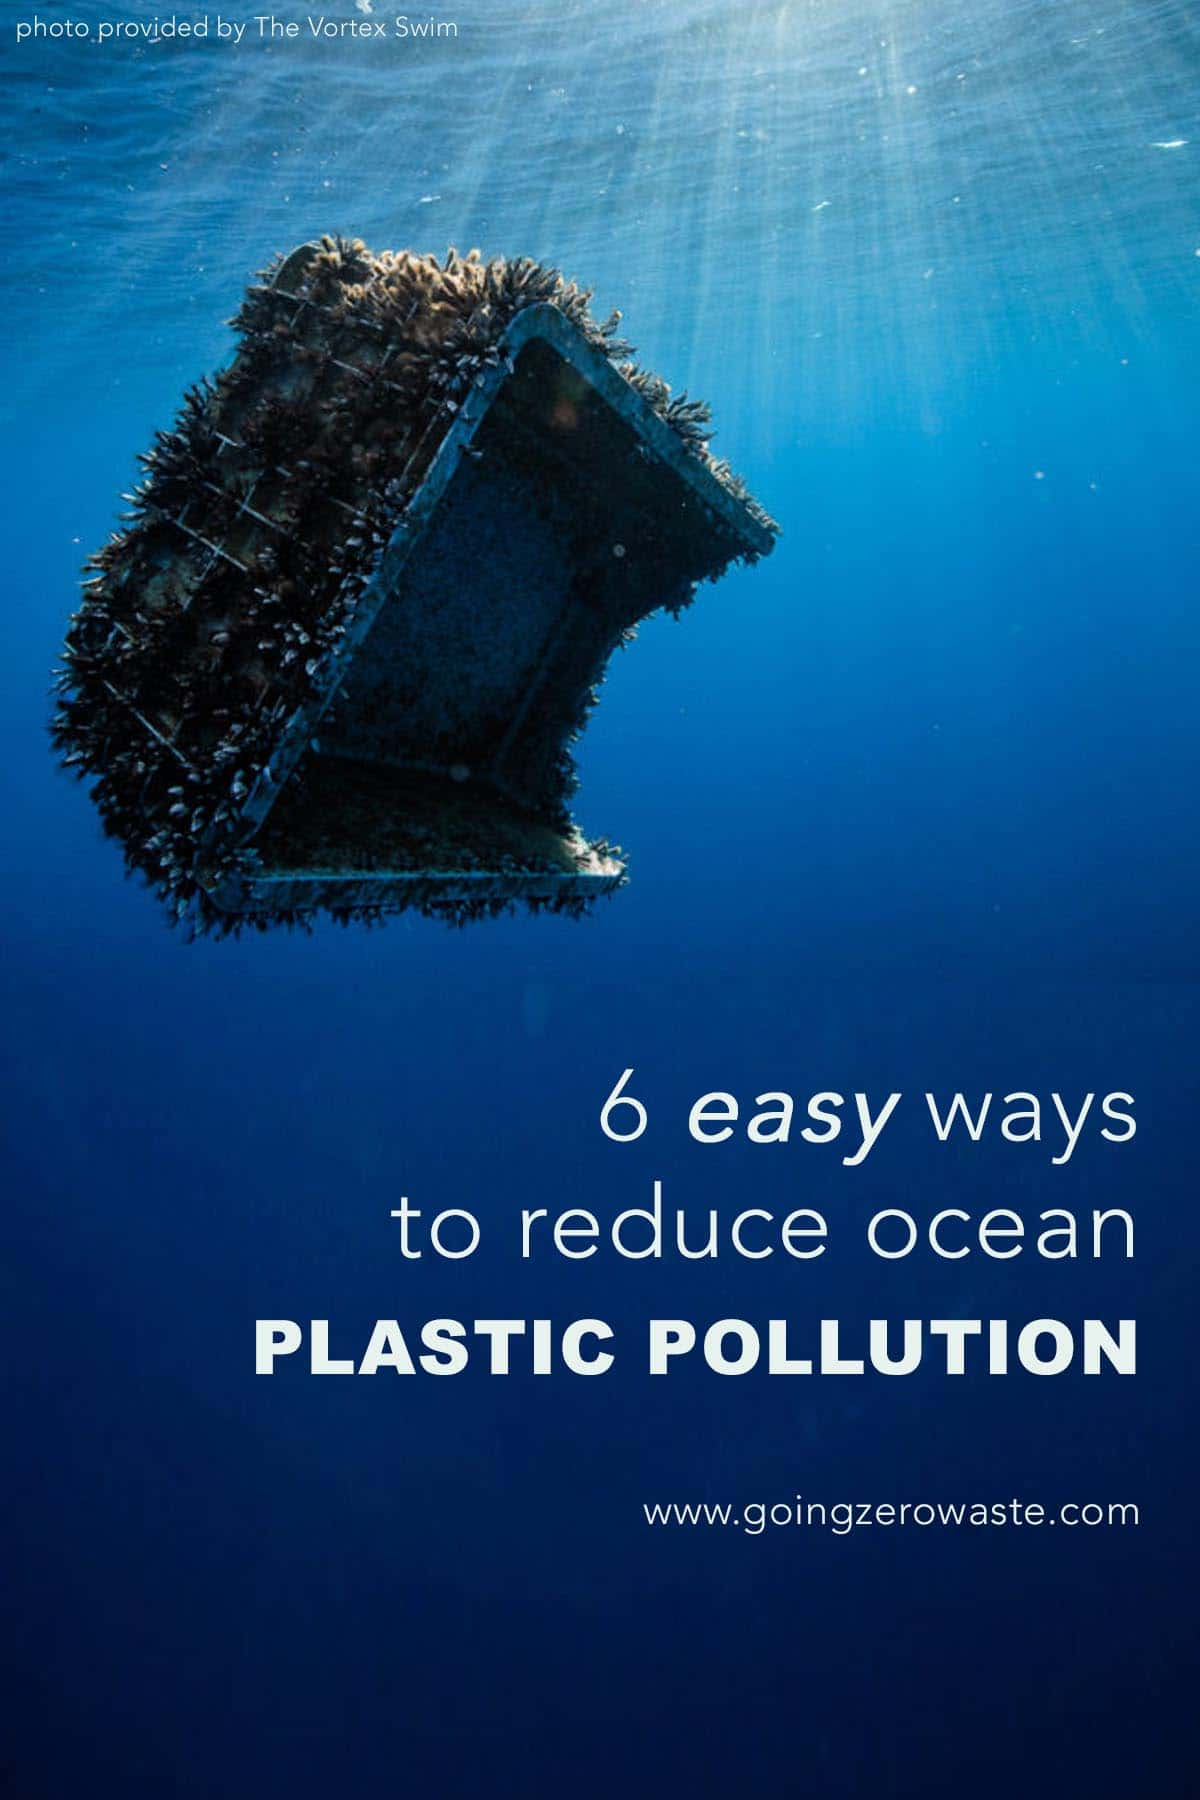 6 Easy Ways to Reduce Ocean Plastic Pollution